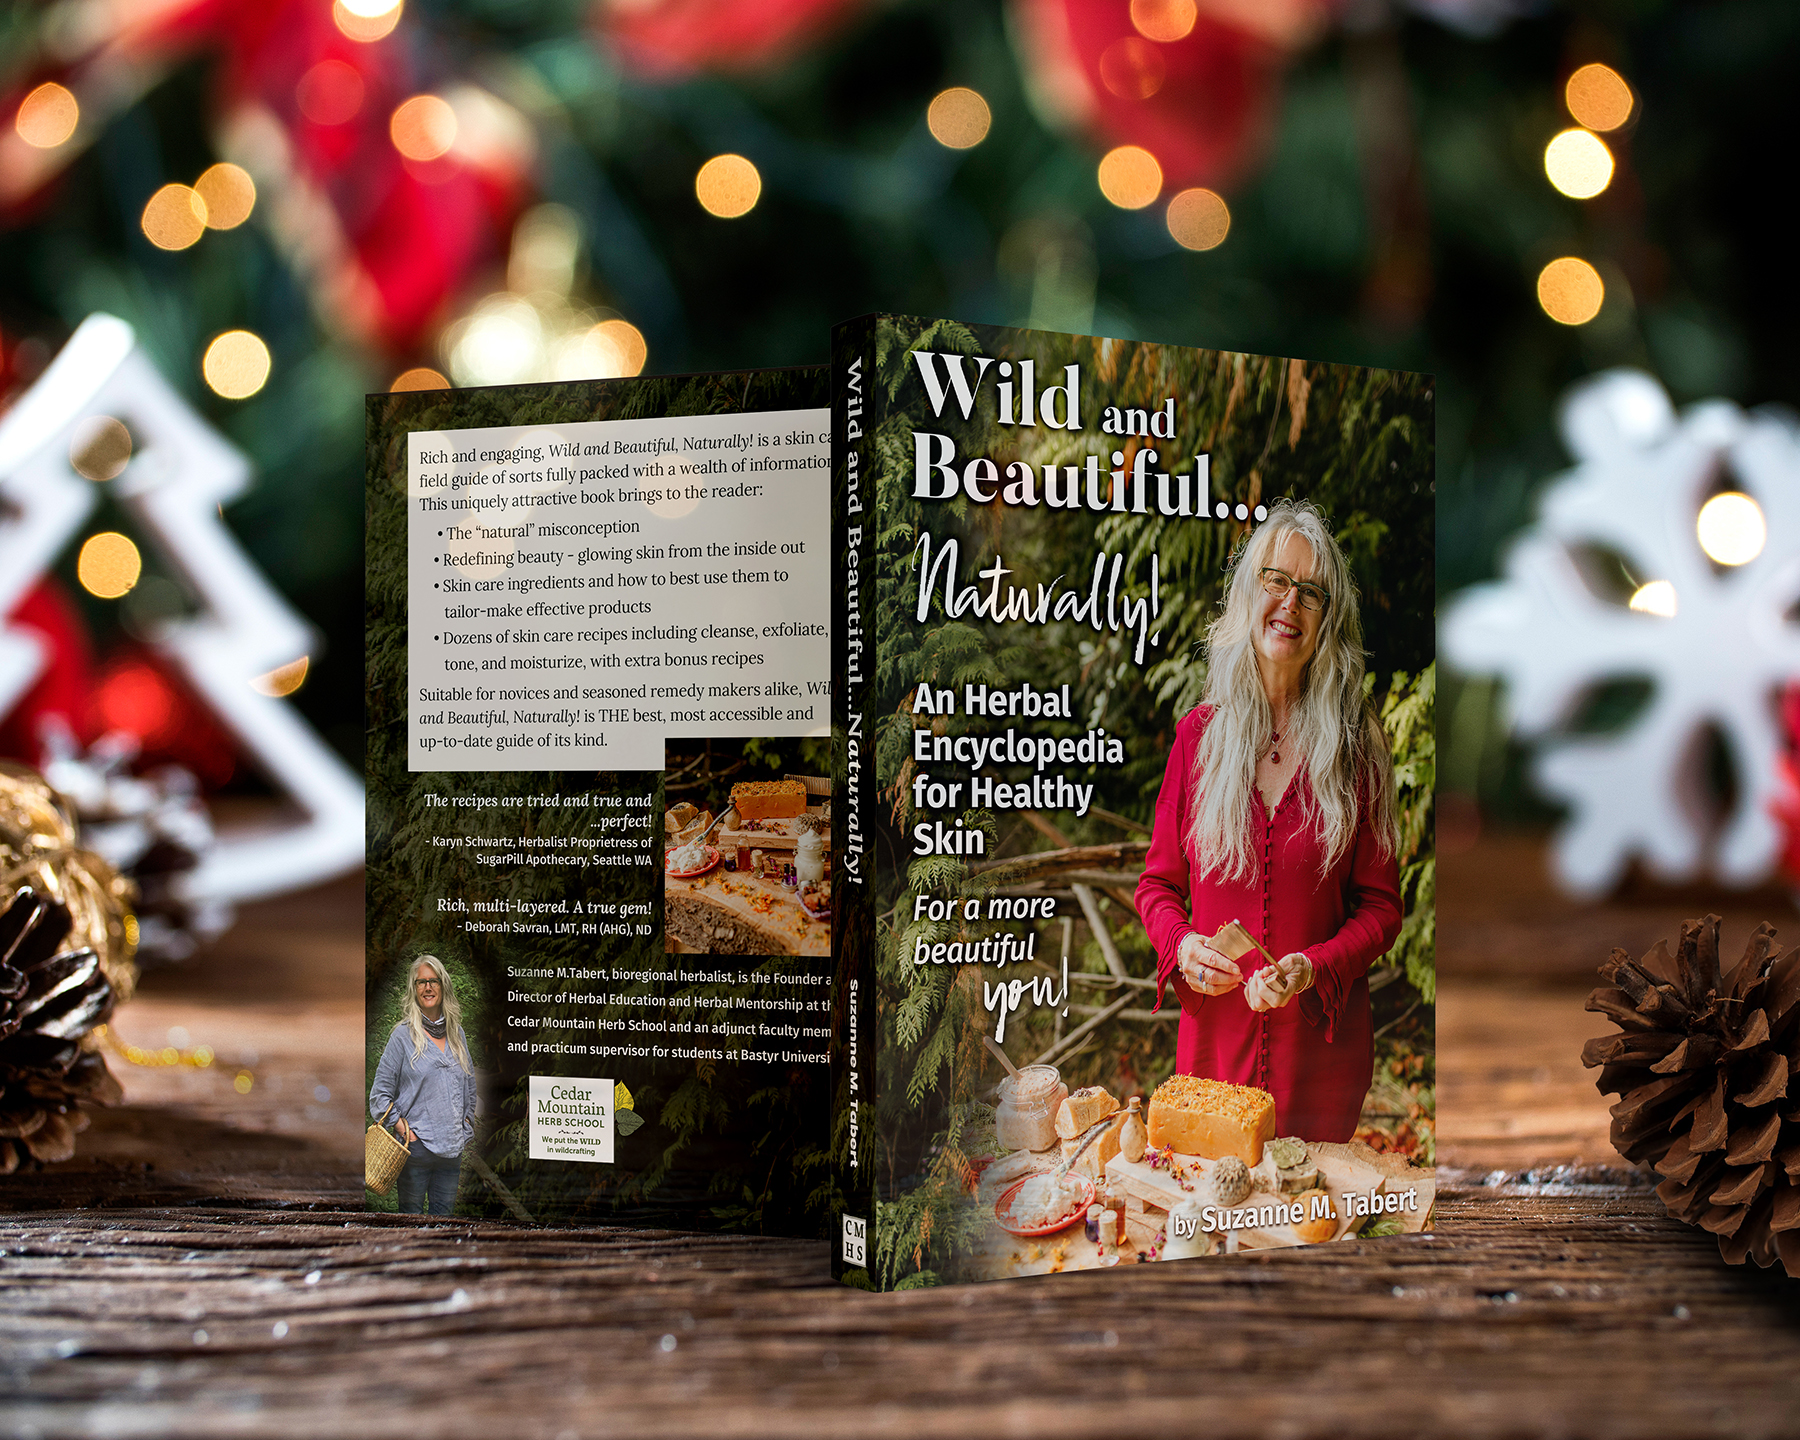 wild and beautiful naturally An Herbal Encyclopedia for Healthy Skin